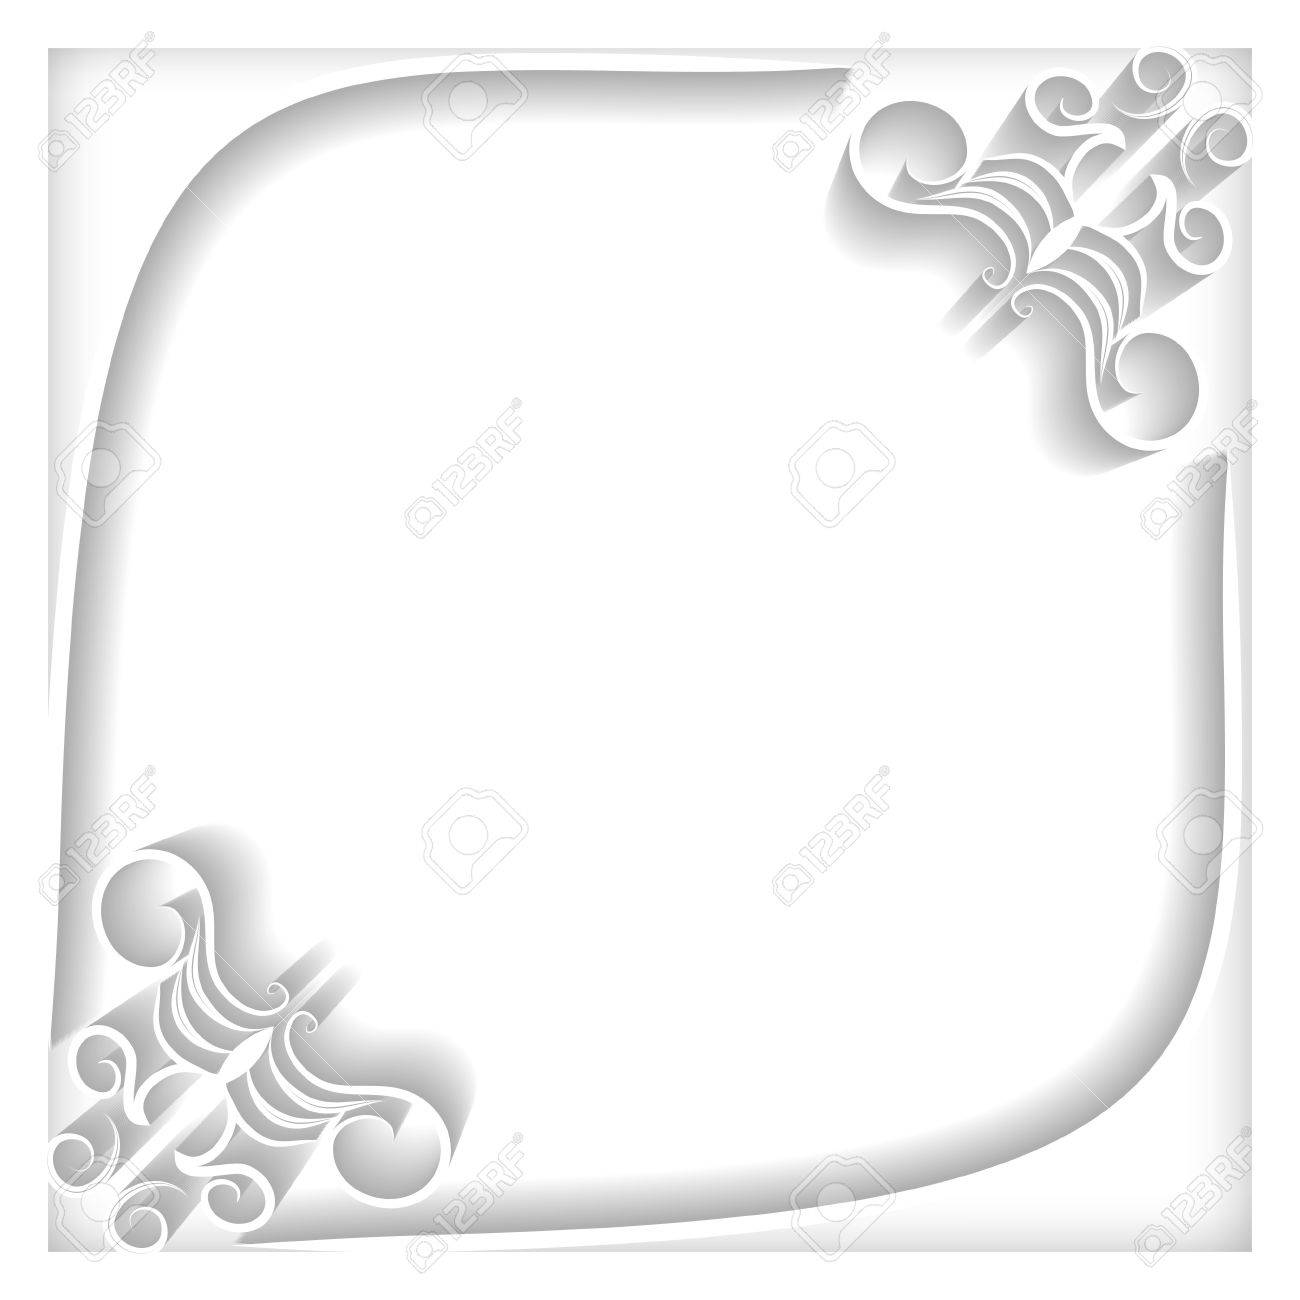 Beautiful white frame with damask pattern greeting card invitation banco de imagens beautiful white frame with damask pattern greeting card invitation card stopboris Image collections